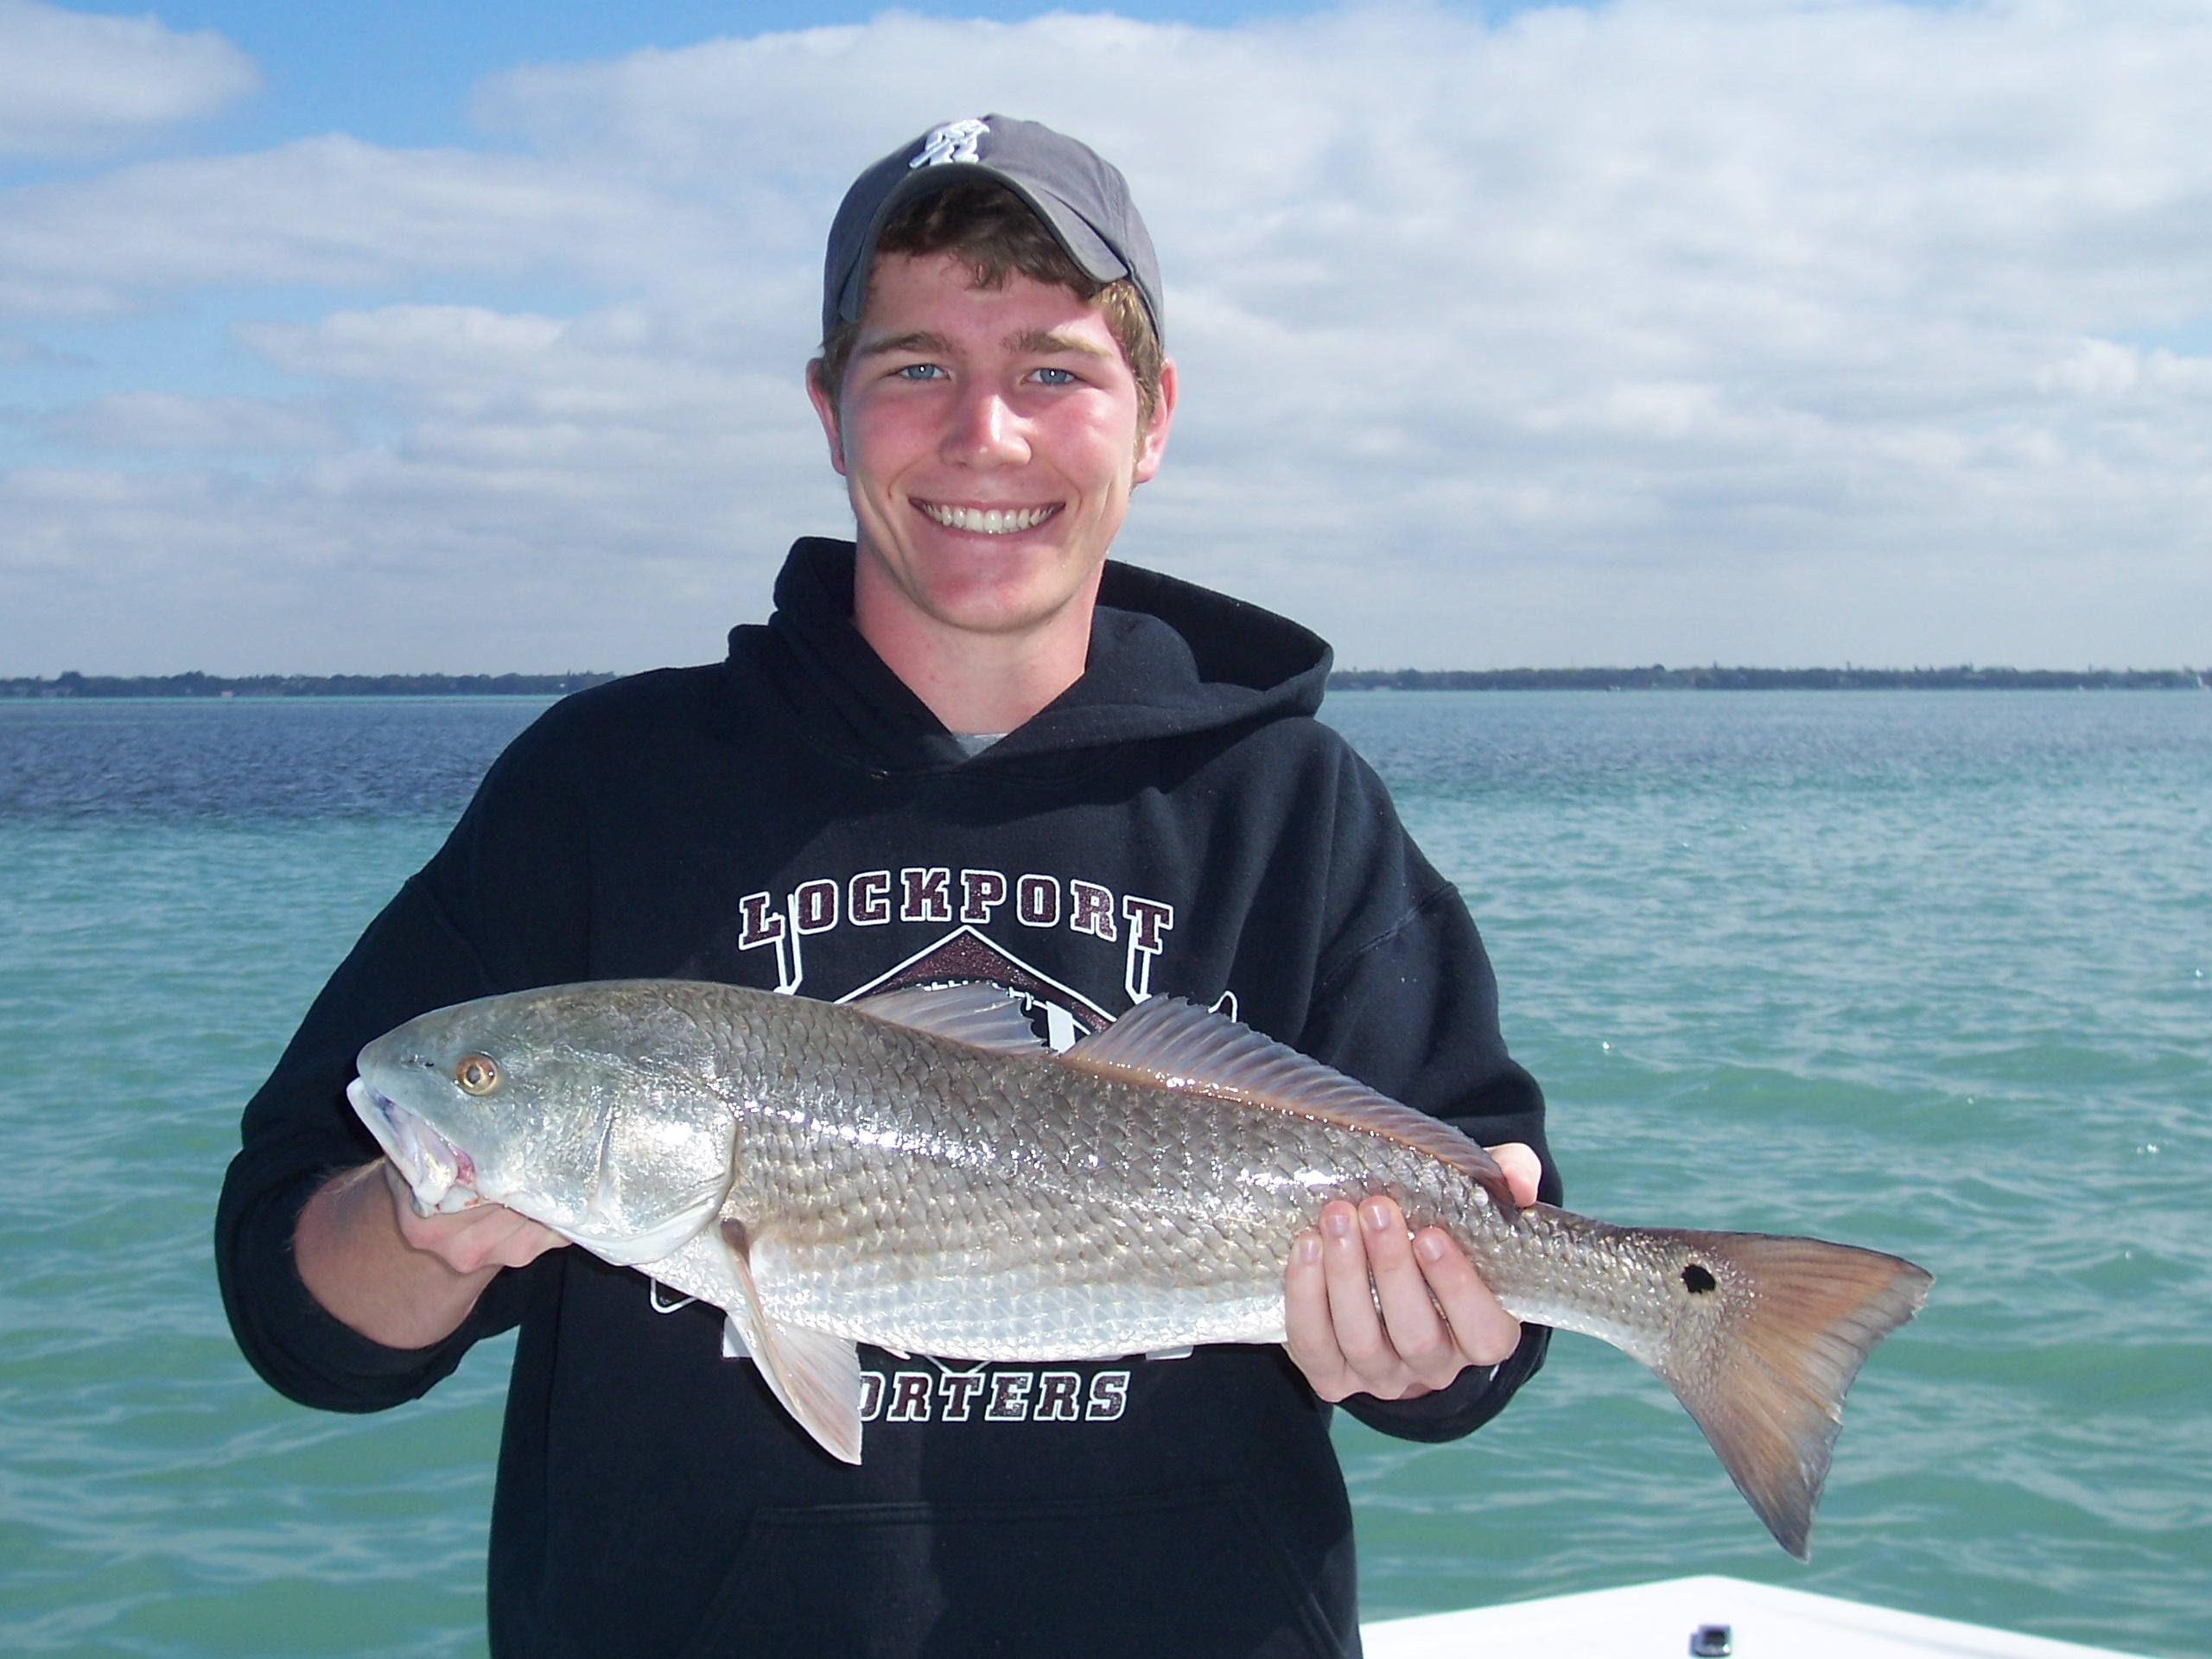 Sarasota florida fishing report rodbender fishing for Sarasota bay fishing report